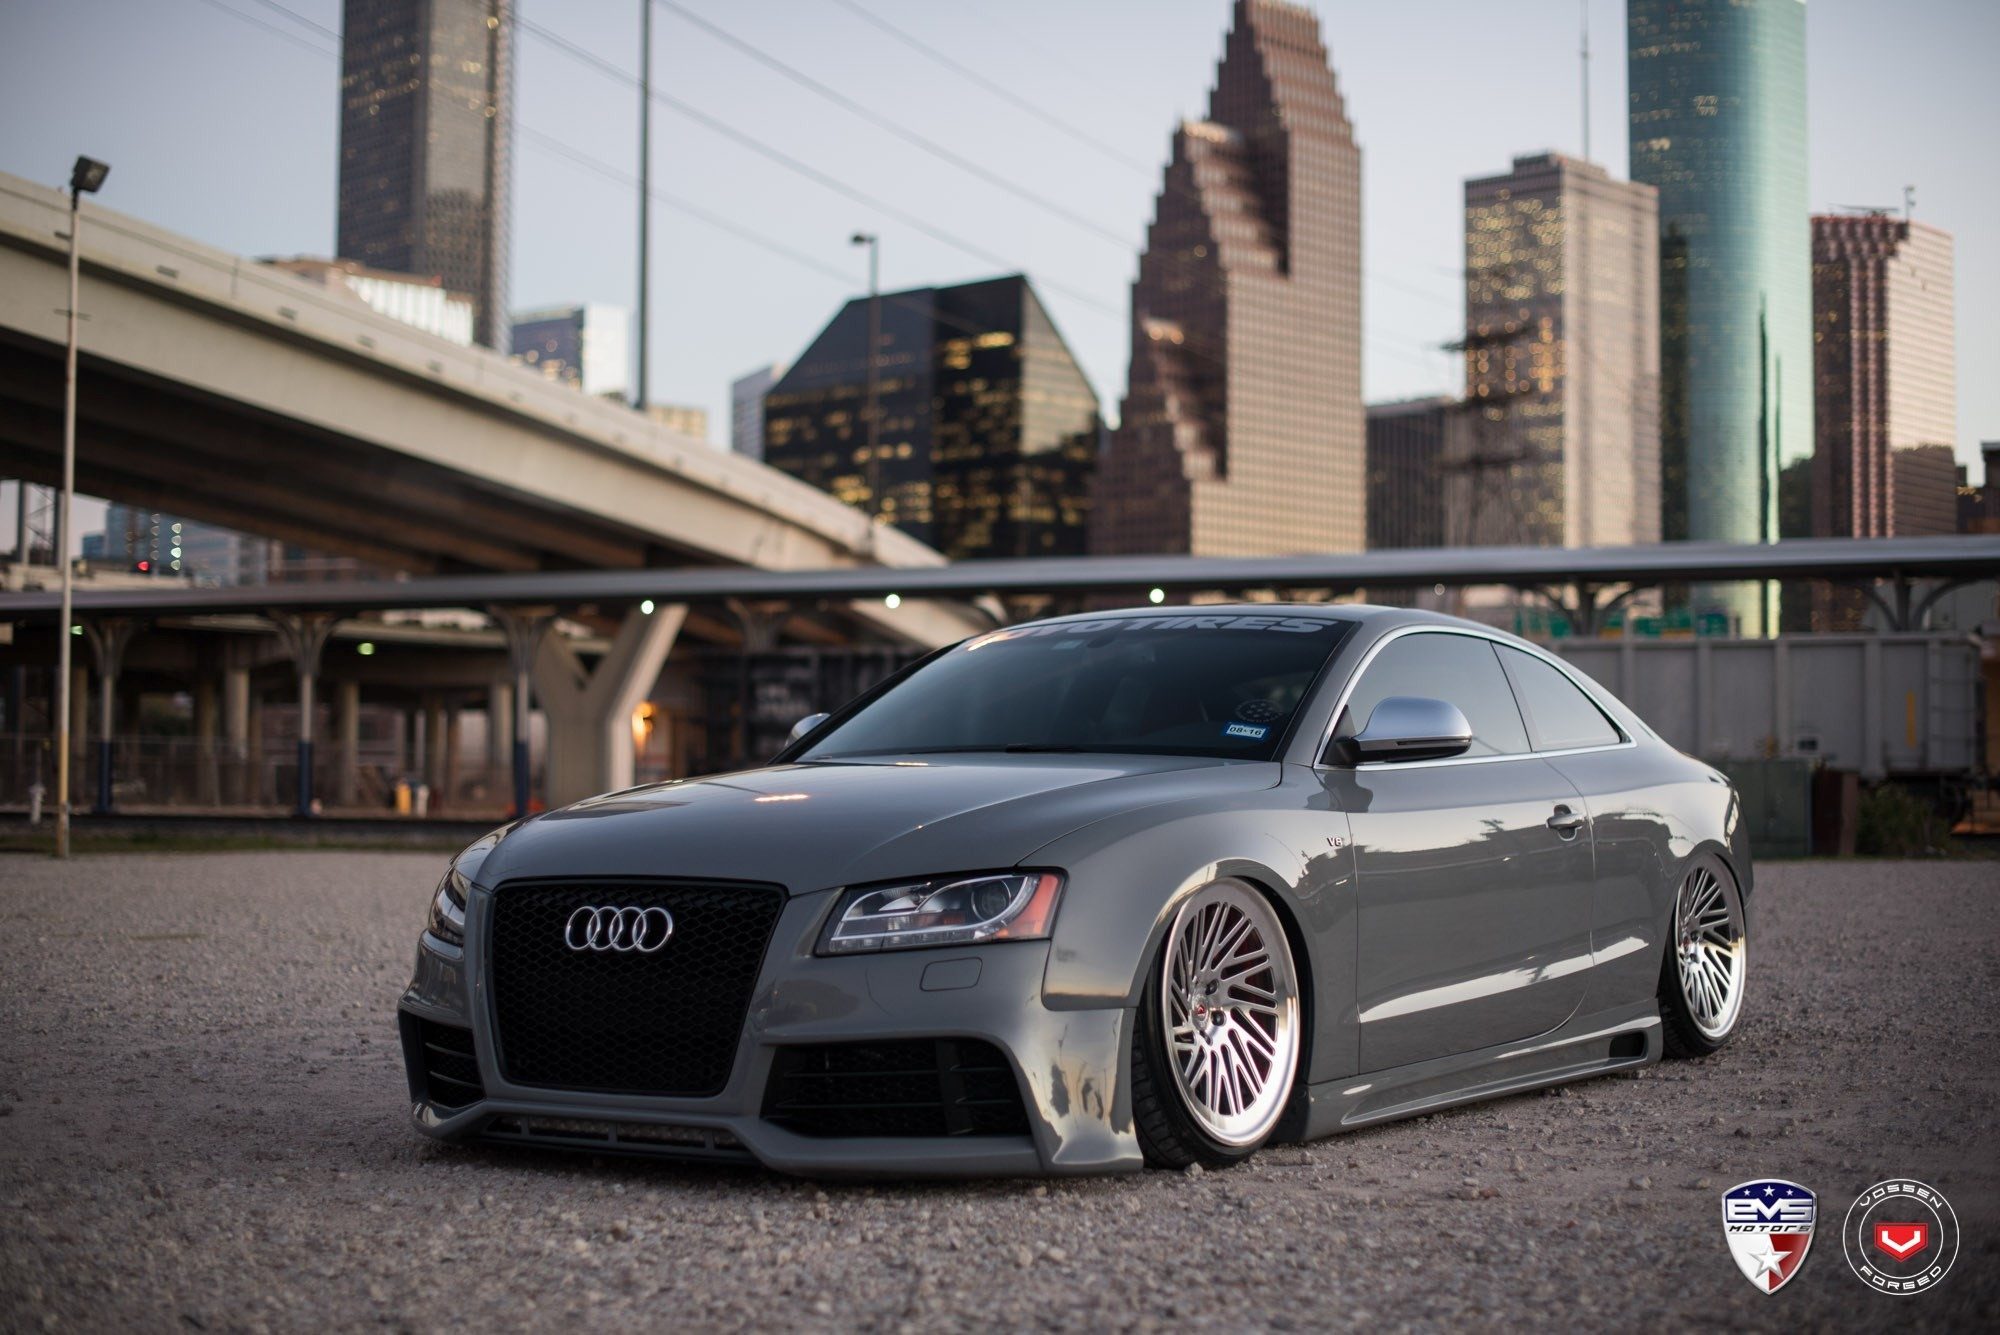 2000x1335 Dudley Grant - widescreen wallpaper audi s5 -  px